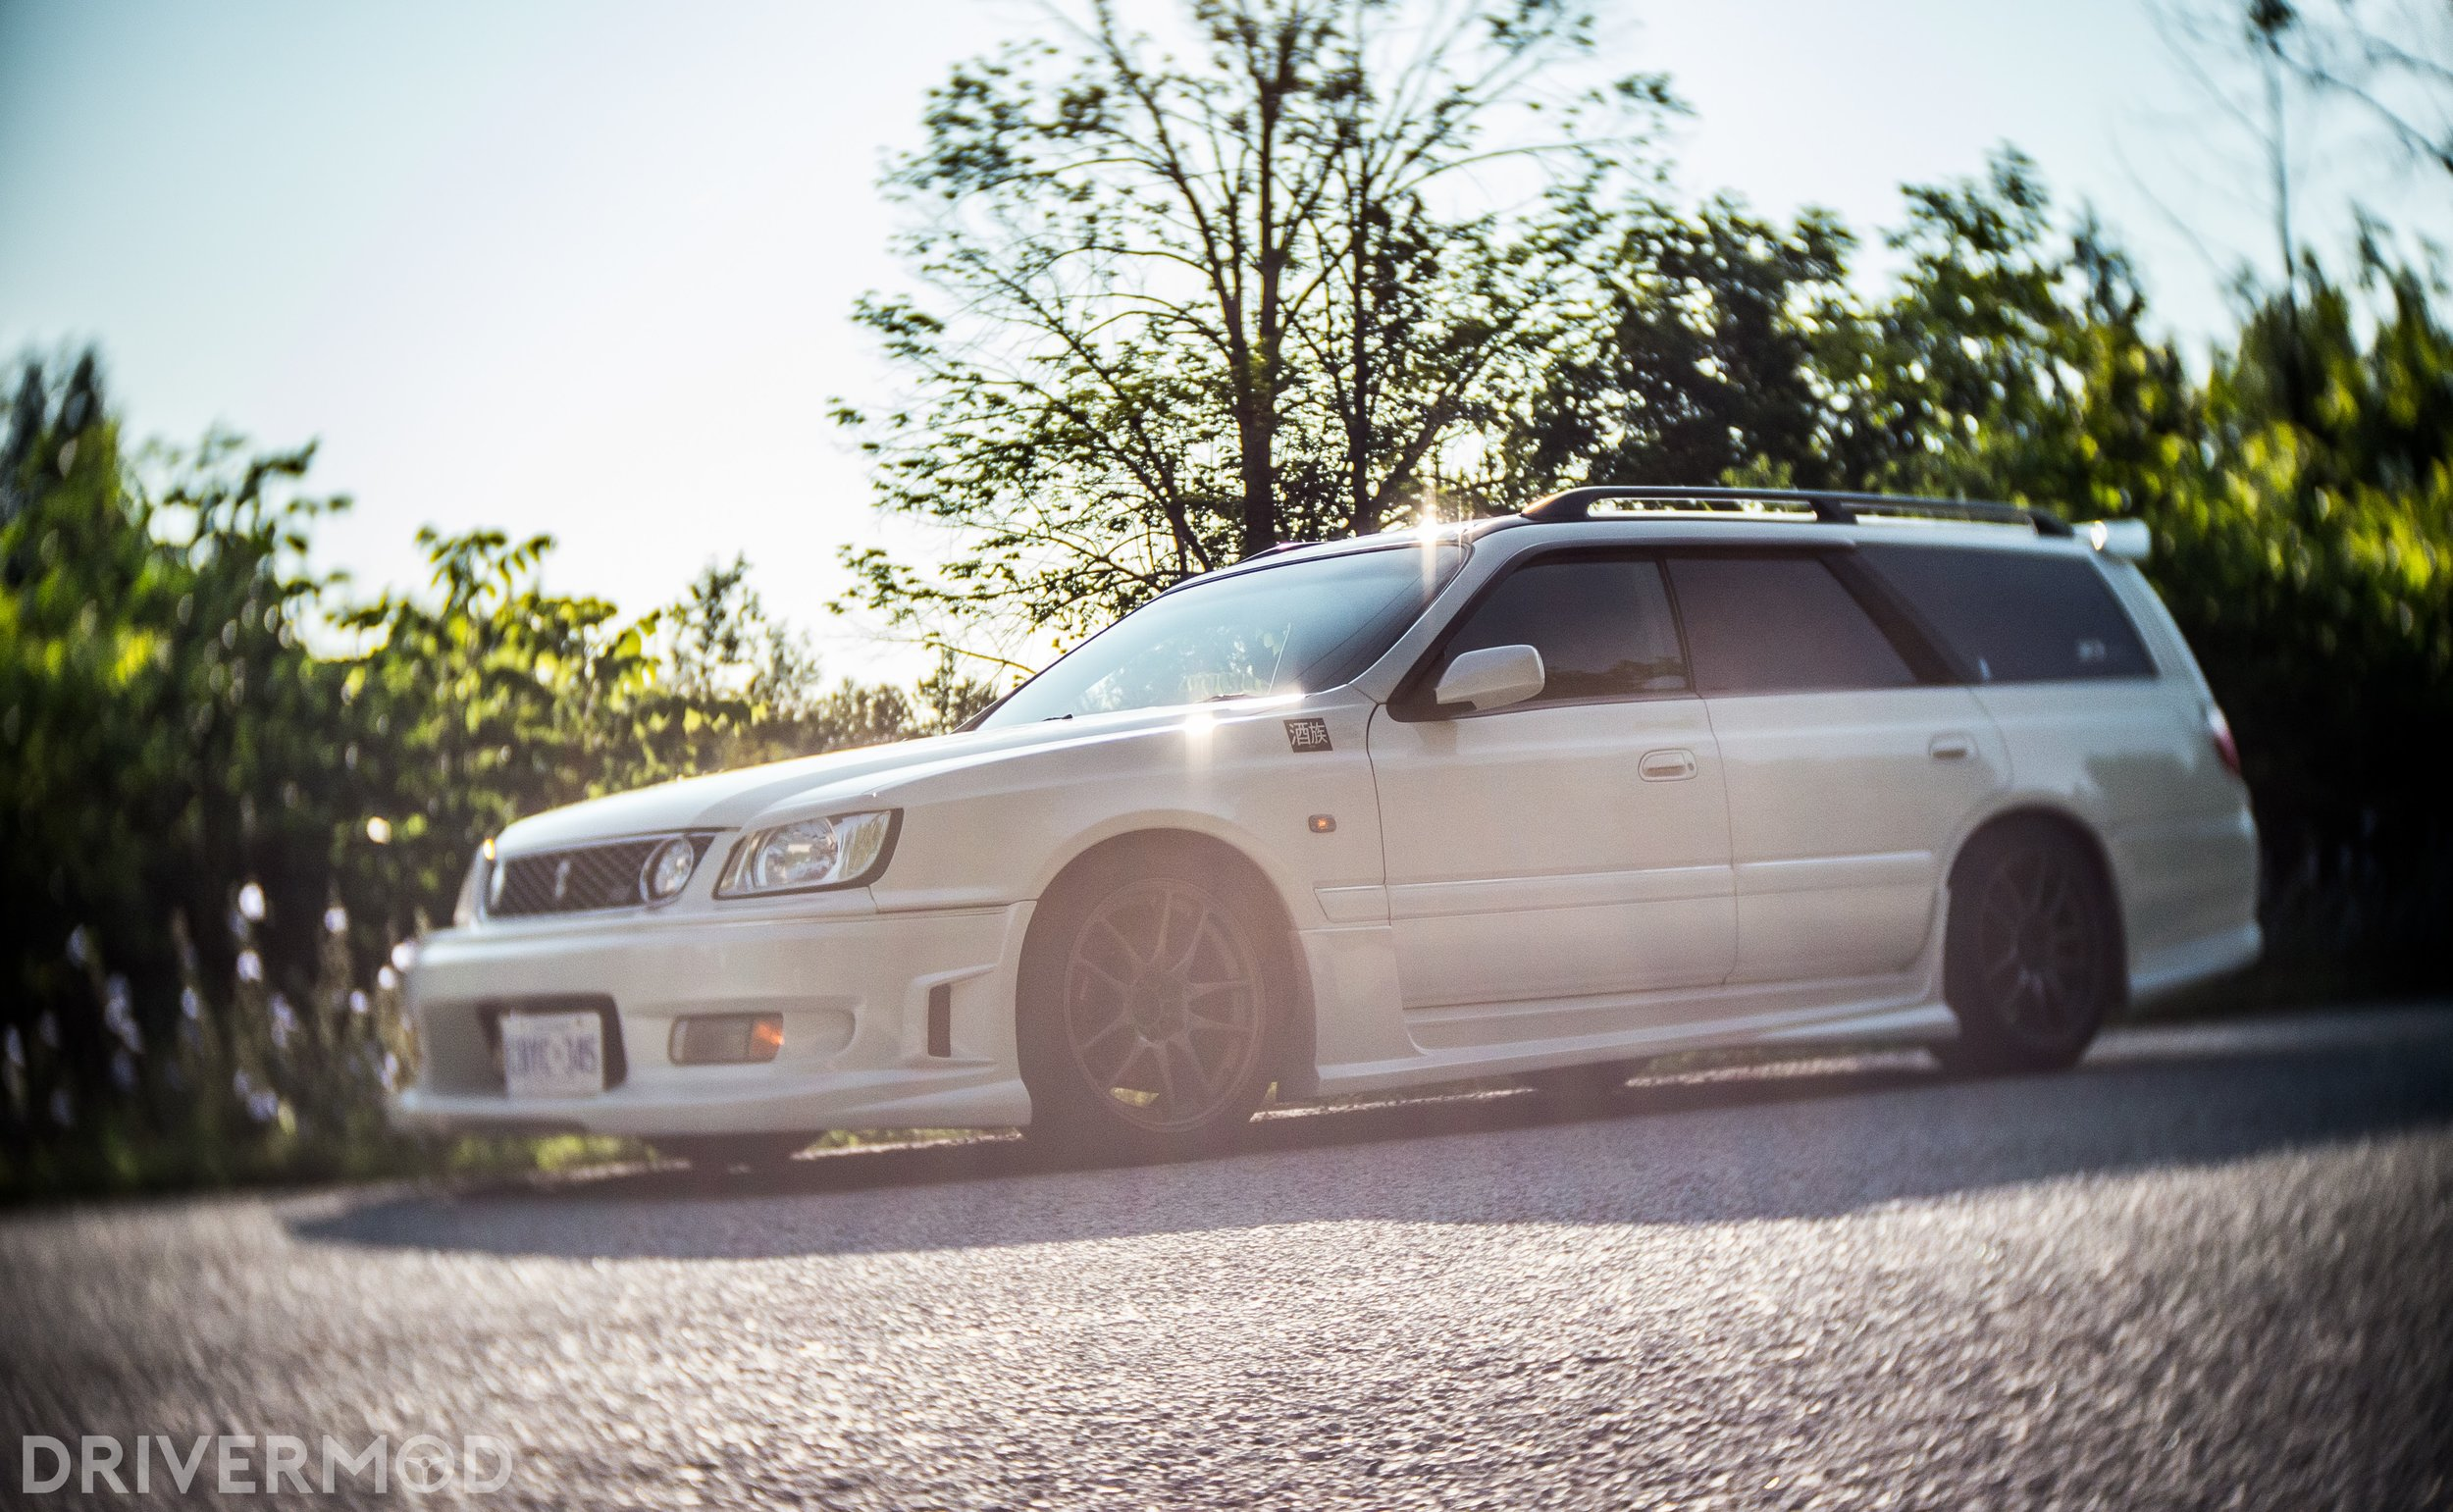 The Nissan Stagea